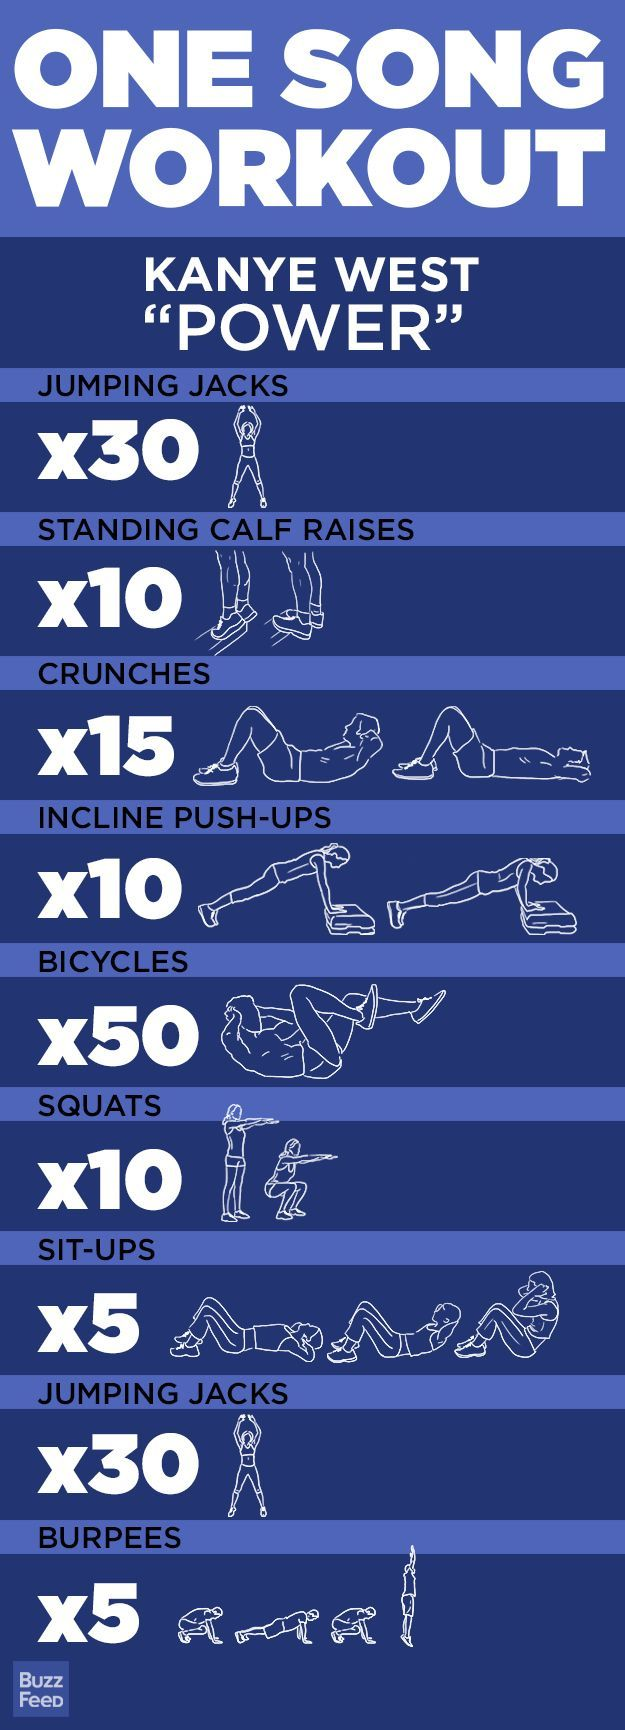 "5 One-Song Workouts - ""Power"" by Kanye West... http://activelifeessentials.com/health-and-fitness/ via http://www.pinterest.com/actvlifeessntls/ways-to-firm-up-your-bod/"